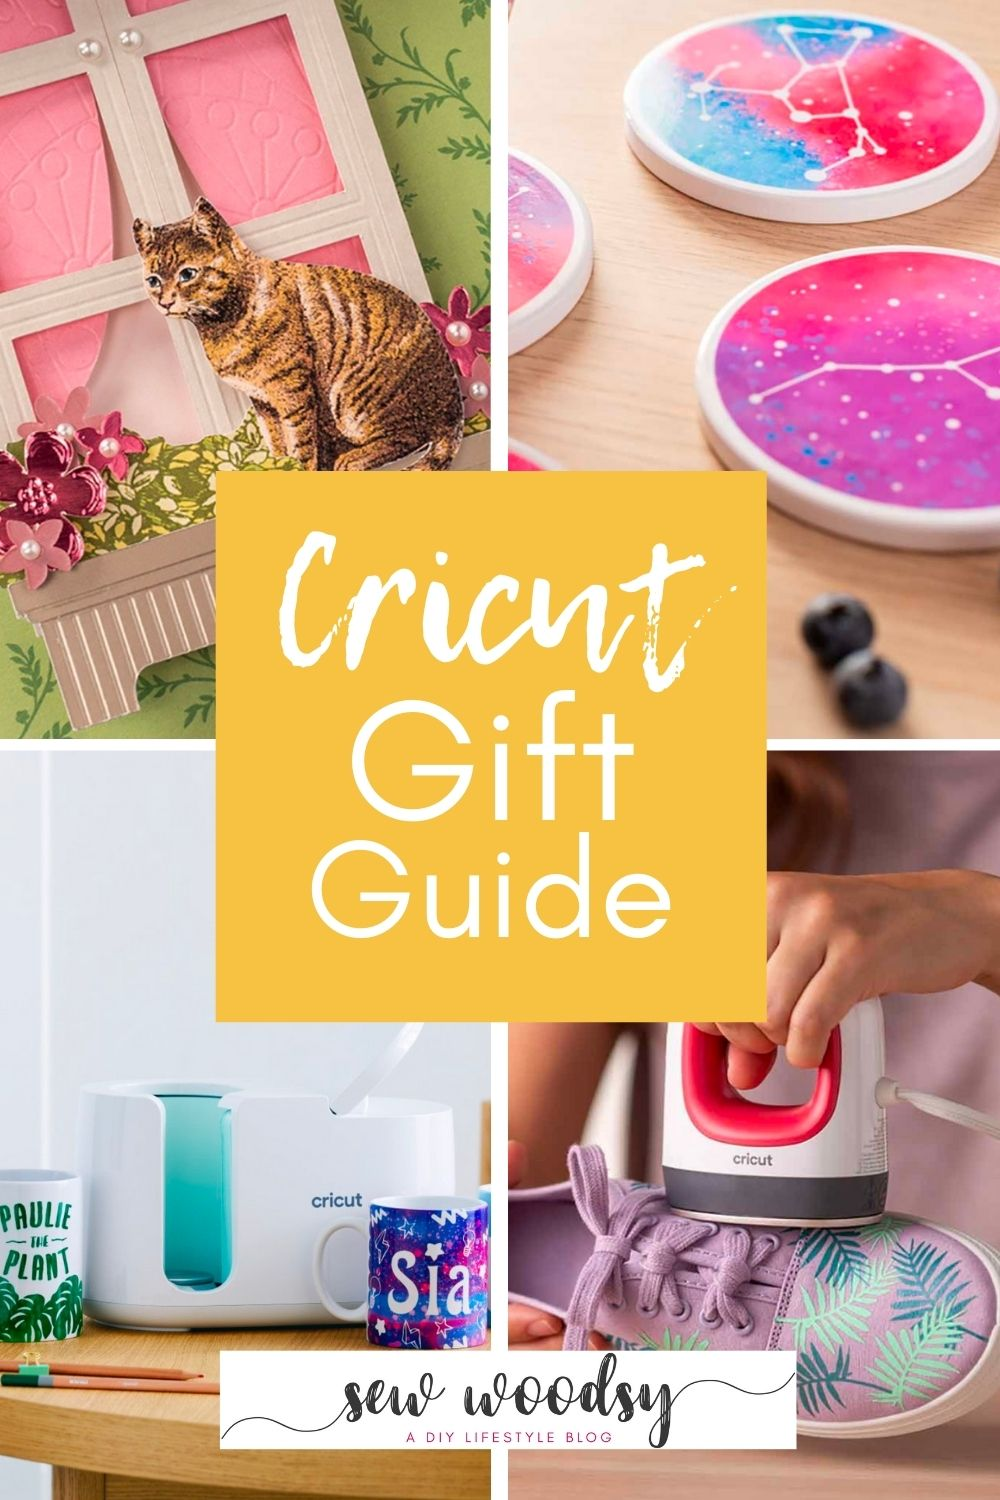 Four Cricut craft projects; card, coasters, mug, and shoes with text on image for Pinterest.